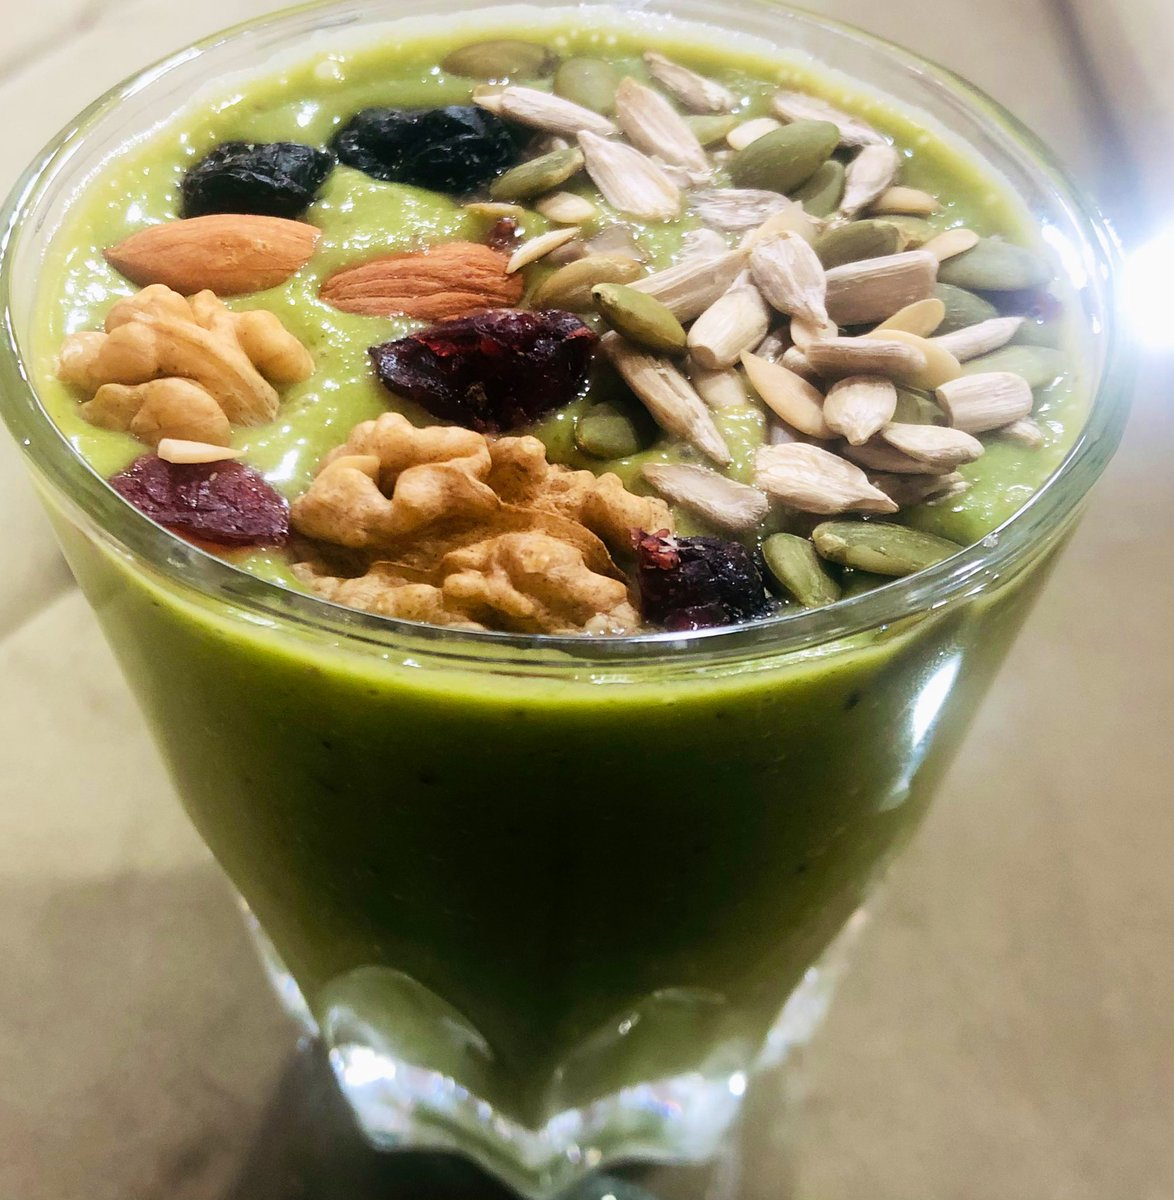 Guess the biodiverse ingredients in these breakfast smoothies. Leaves, roots, stems, fruits and seeds of different plants are able to cater to the needs of a balanced diet.  #biodiversity #breakfast